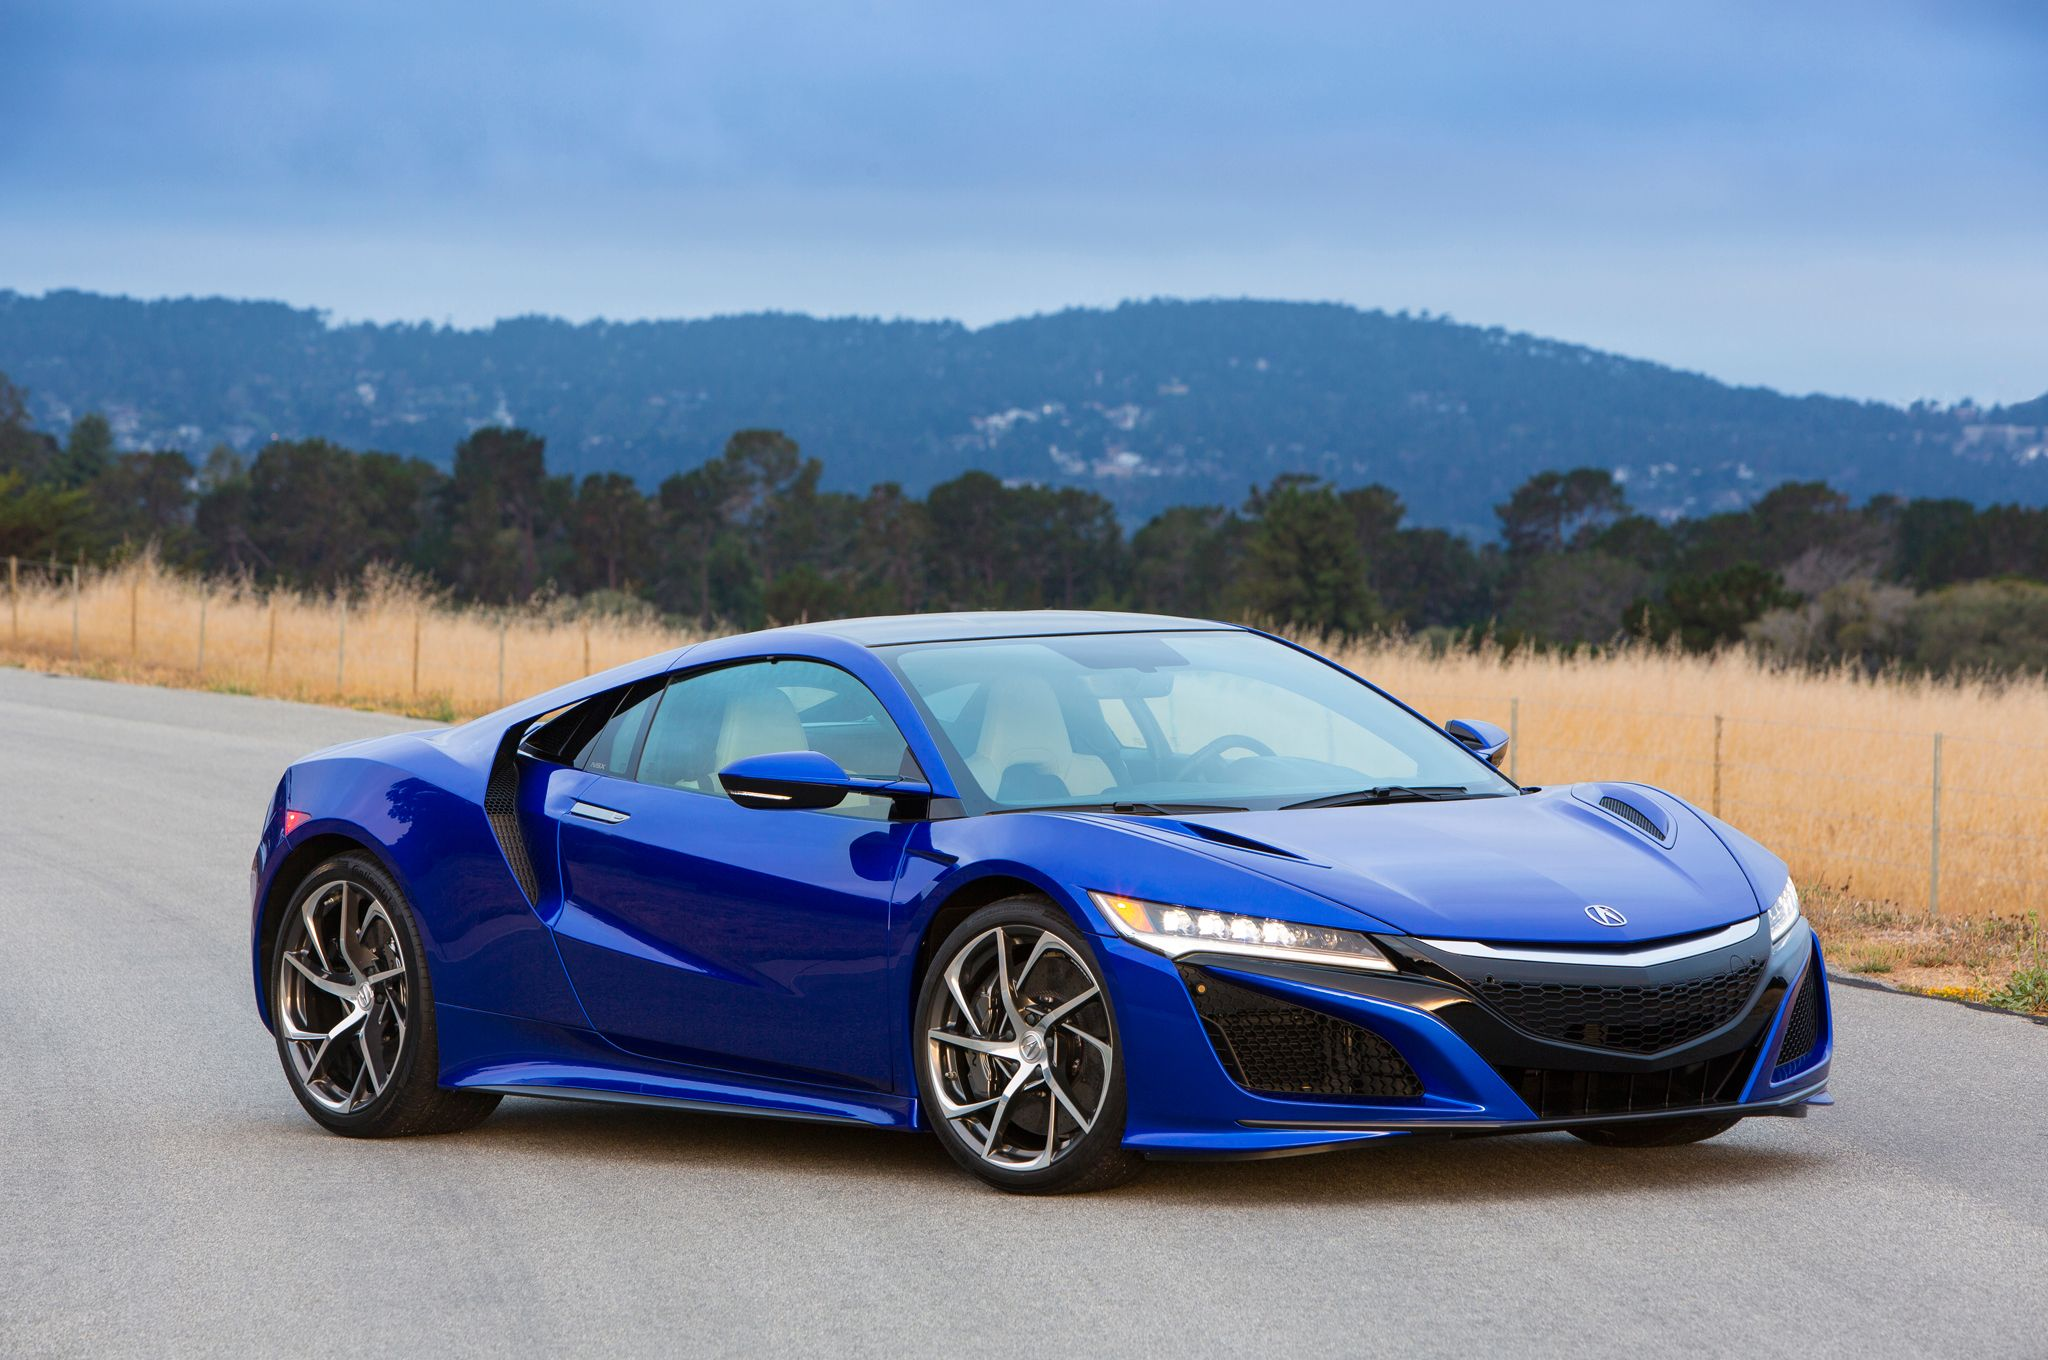 2017 acura nsx at the quail 2015 front